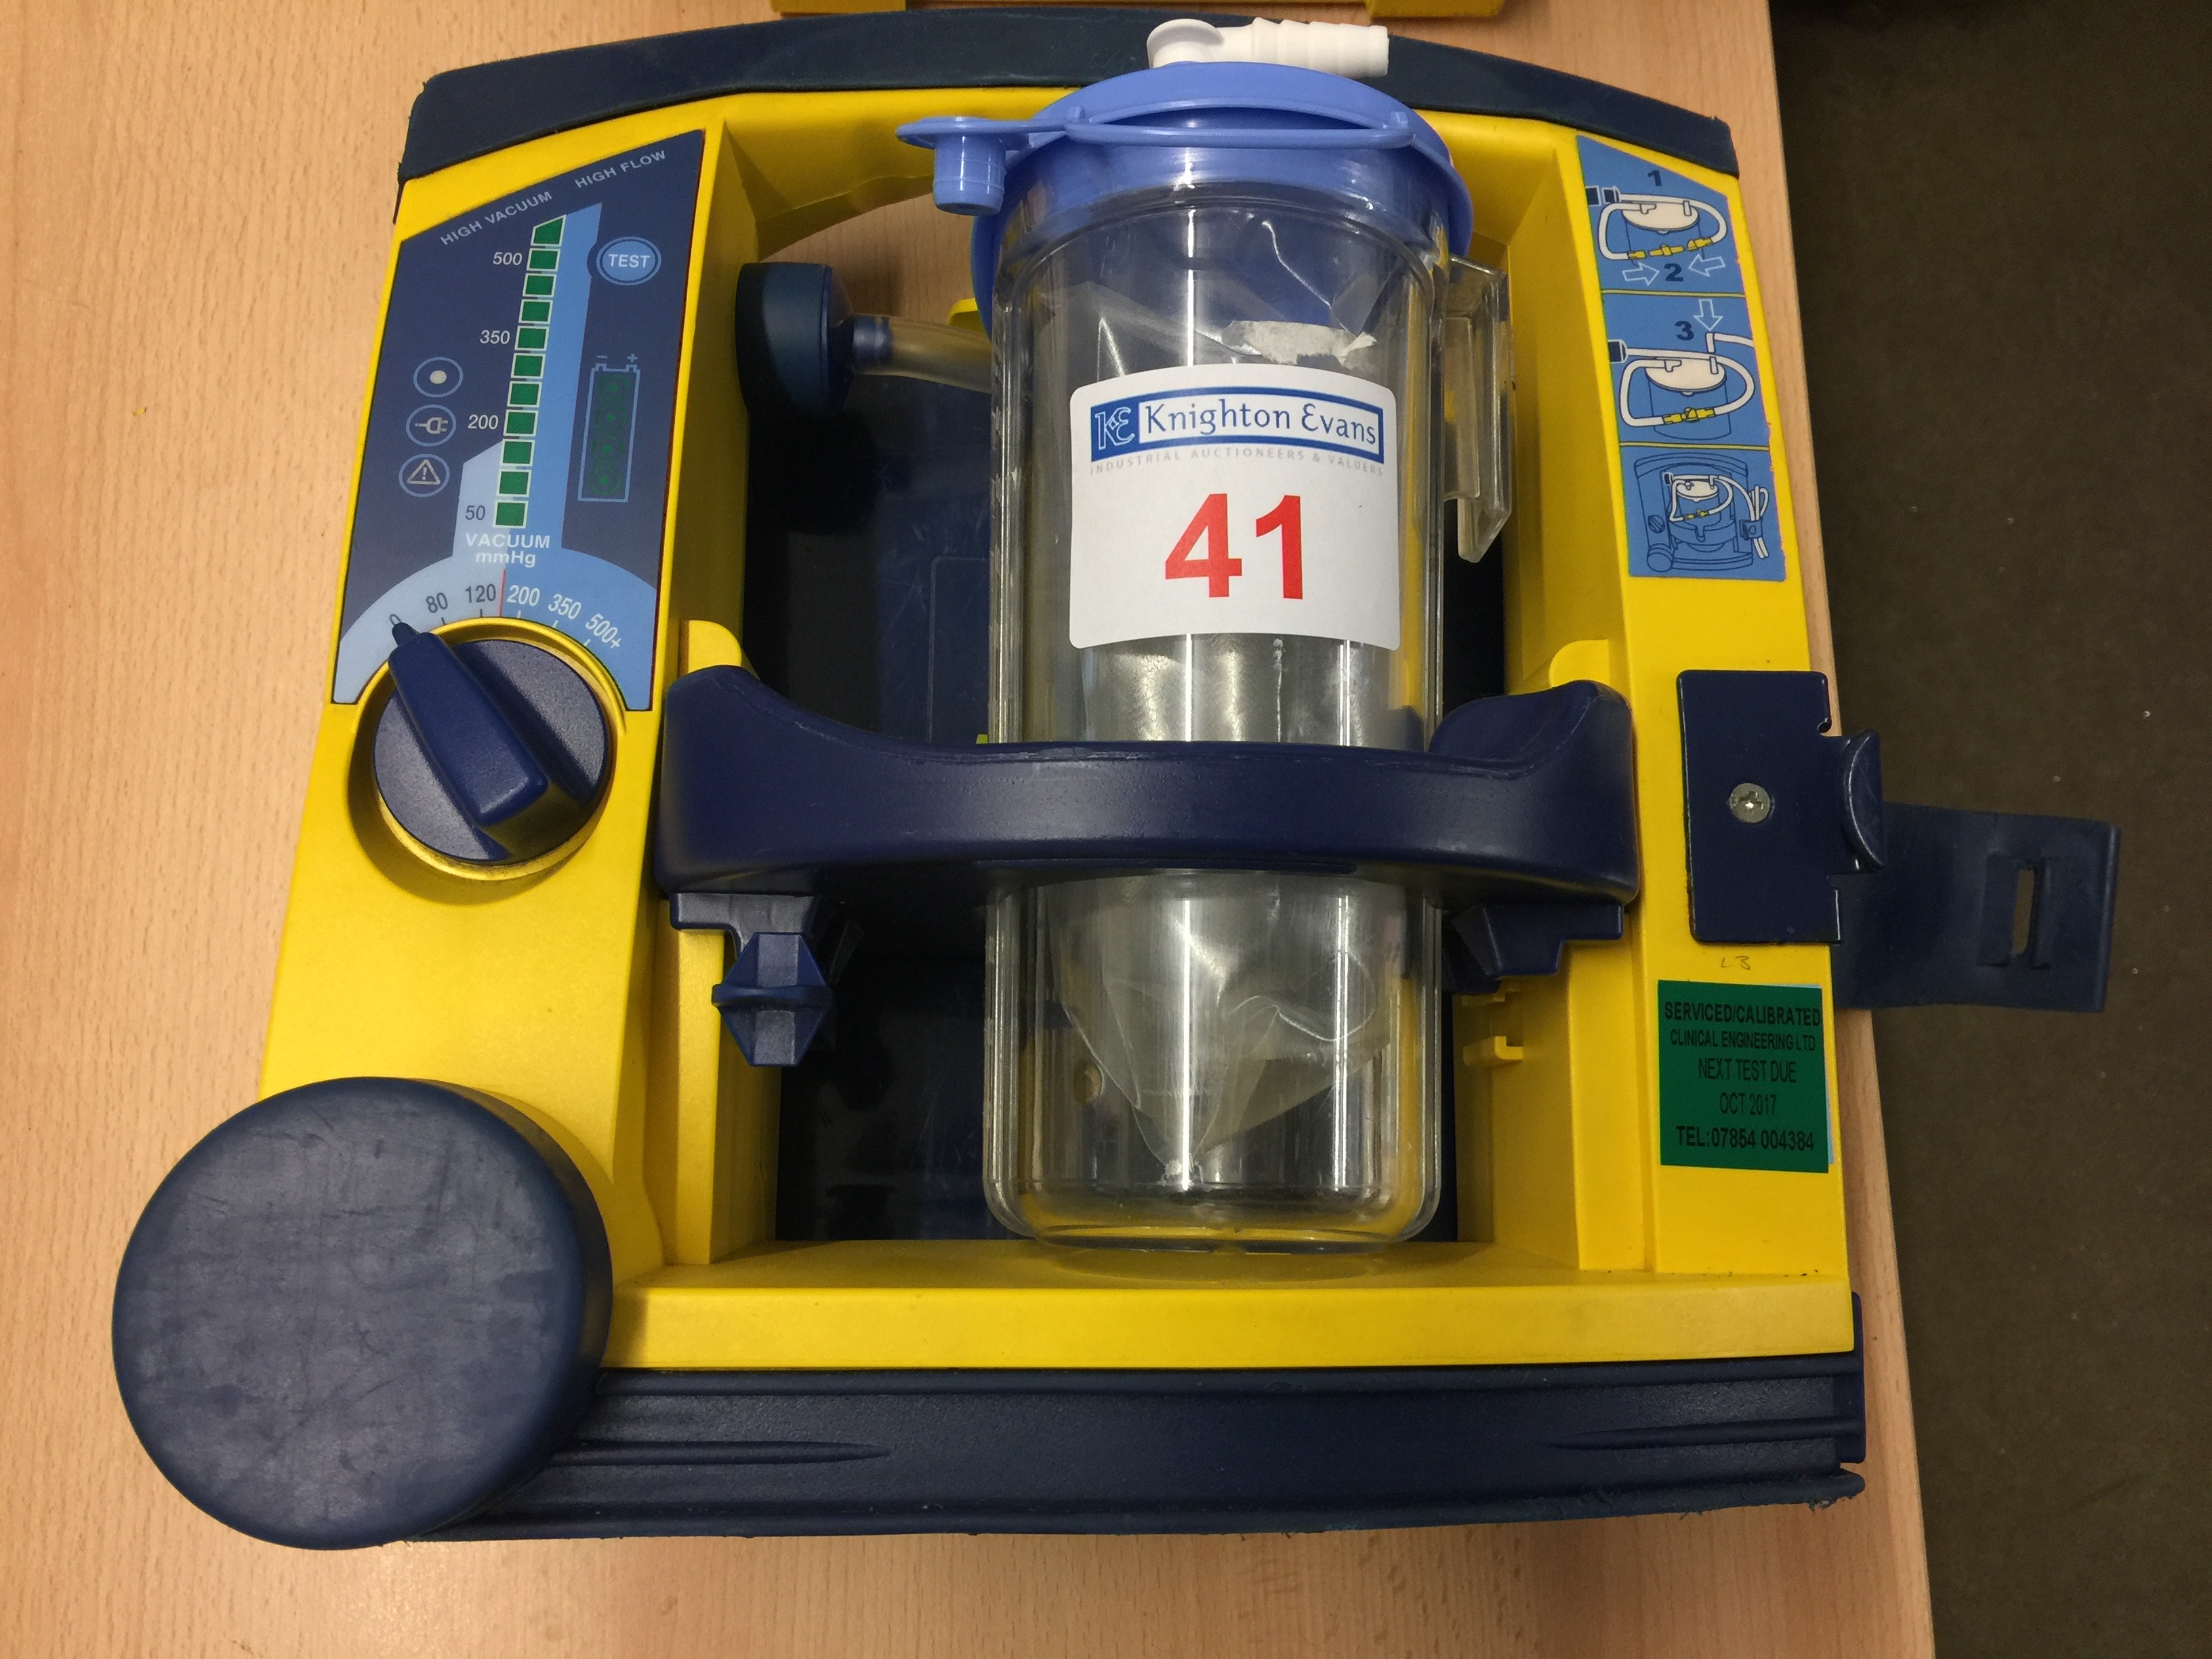 Lot 41 - Laerdal LSU portable suction unit with mounting plate, test due October 2017 (no 12v charger)